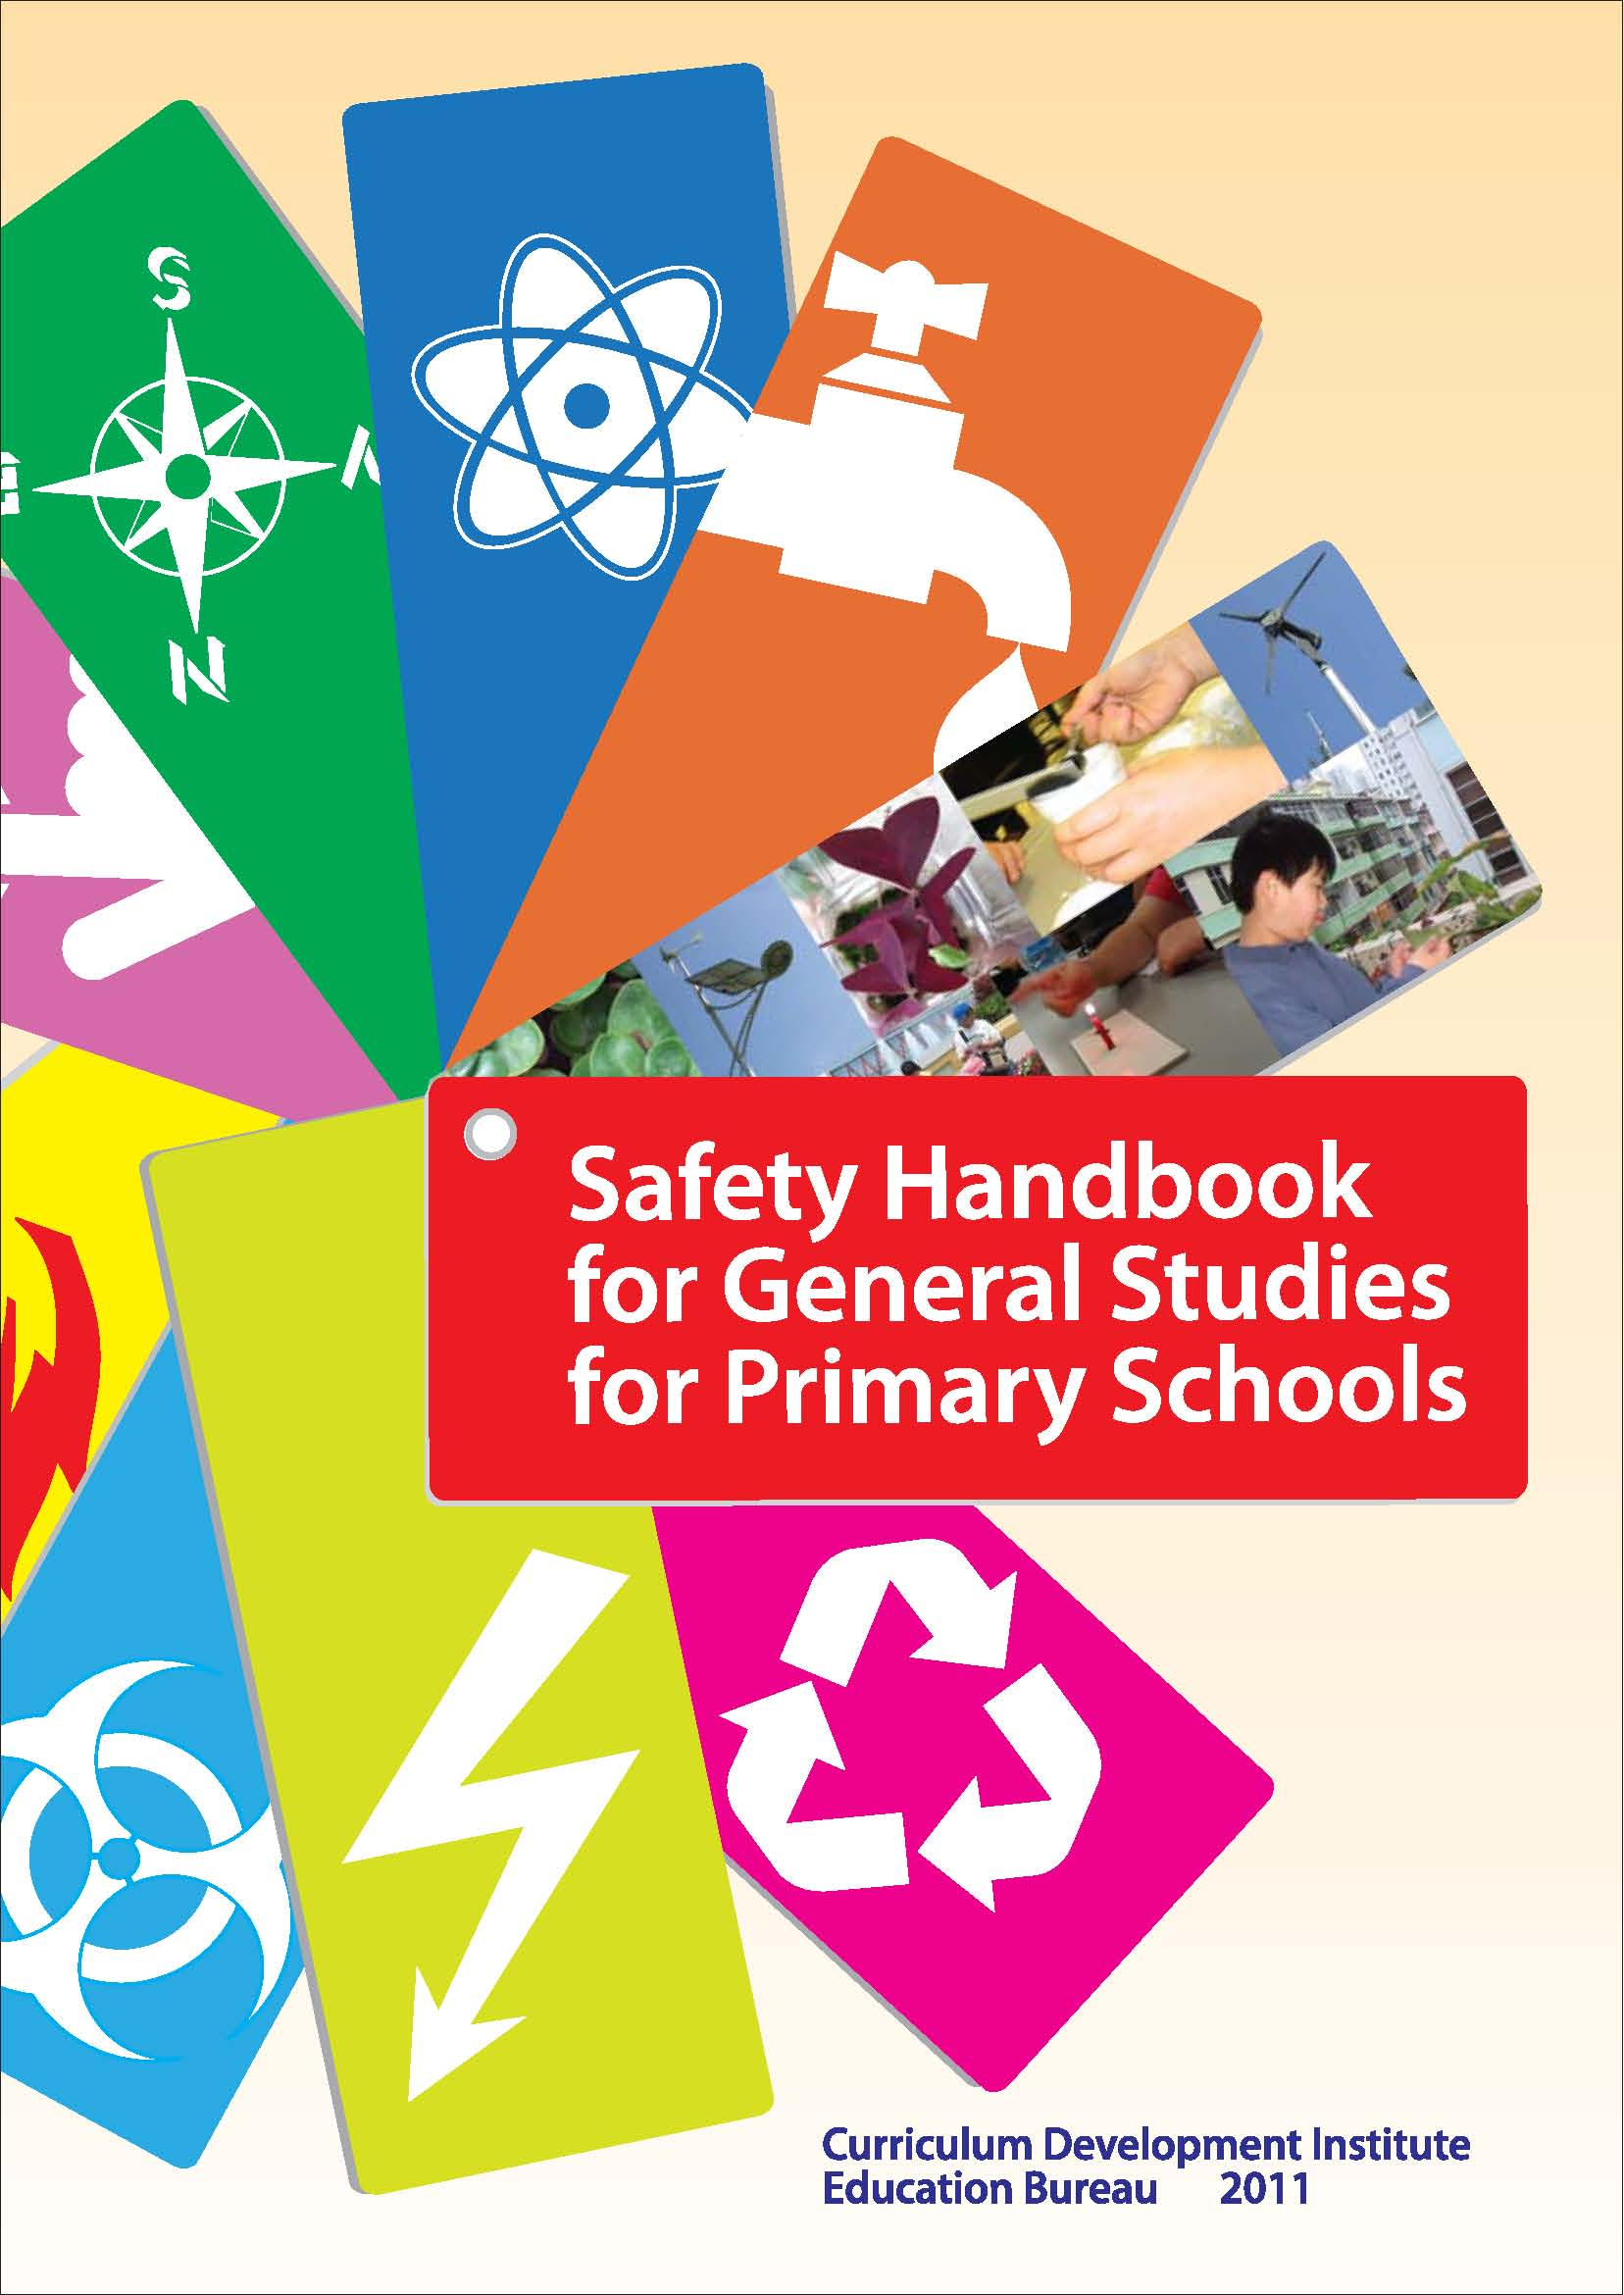 Safety Handbook for General Studies for Primary Schools